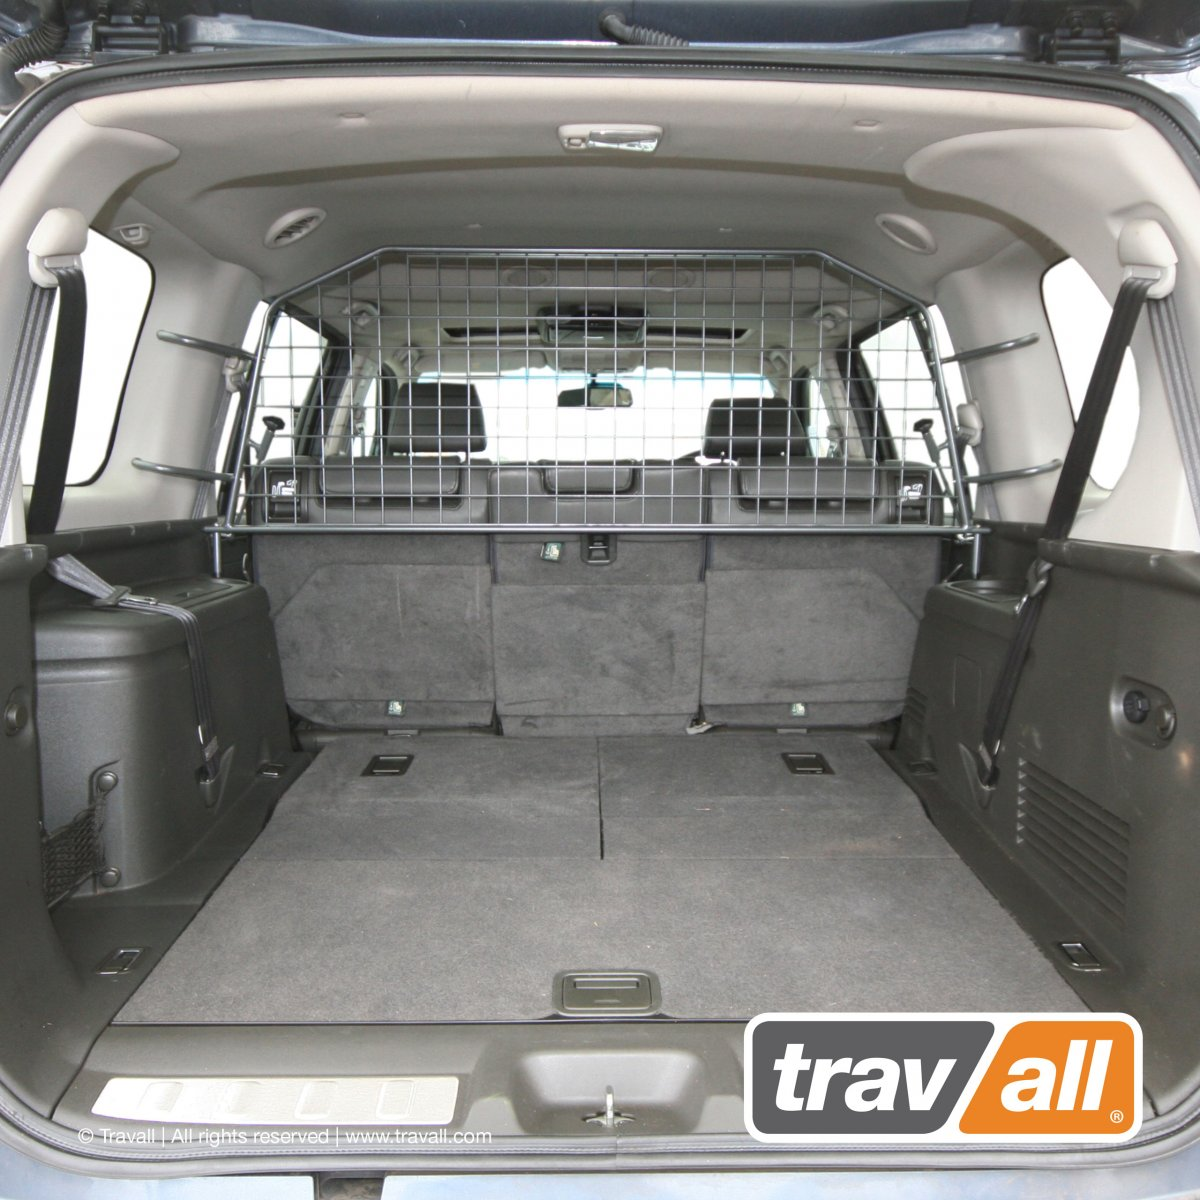 Travall®GUARD for Nissan Pathfinder (2004-2012)